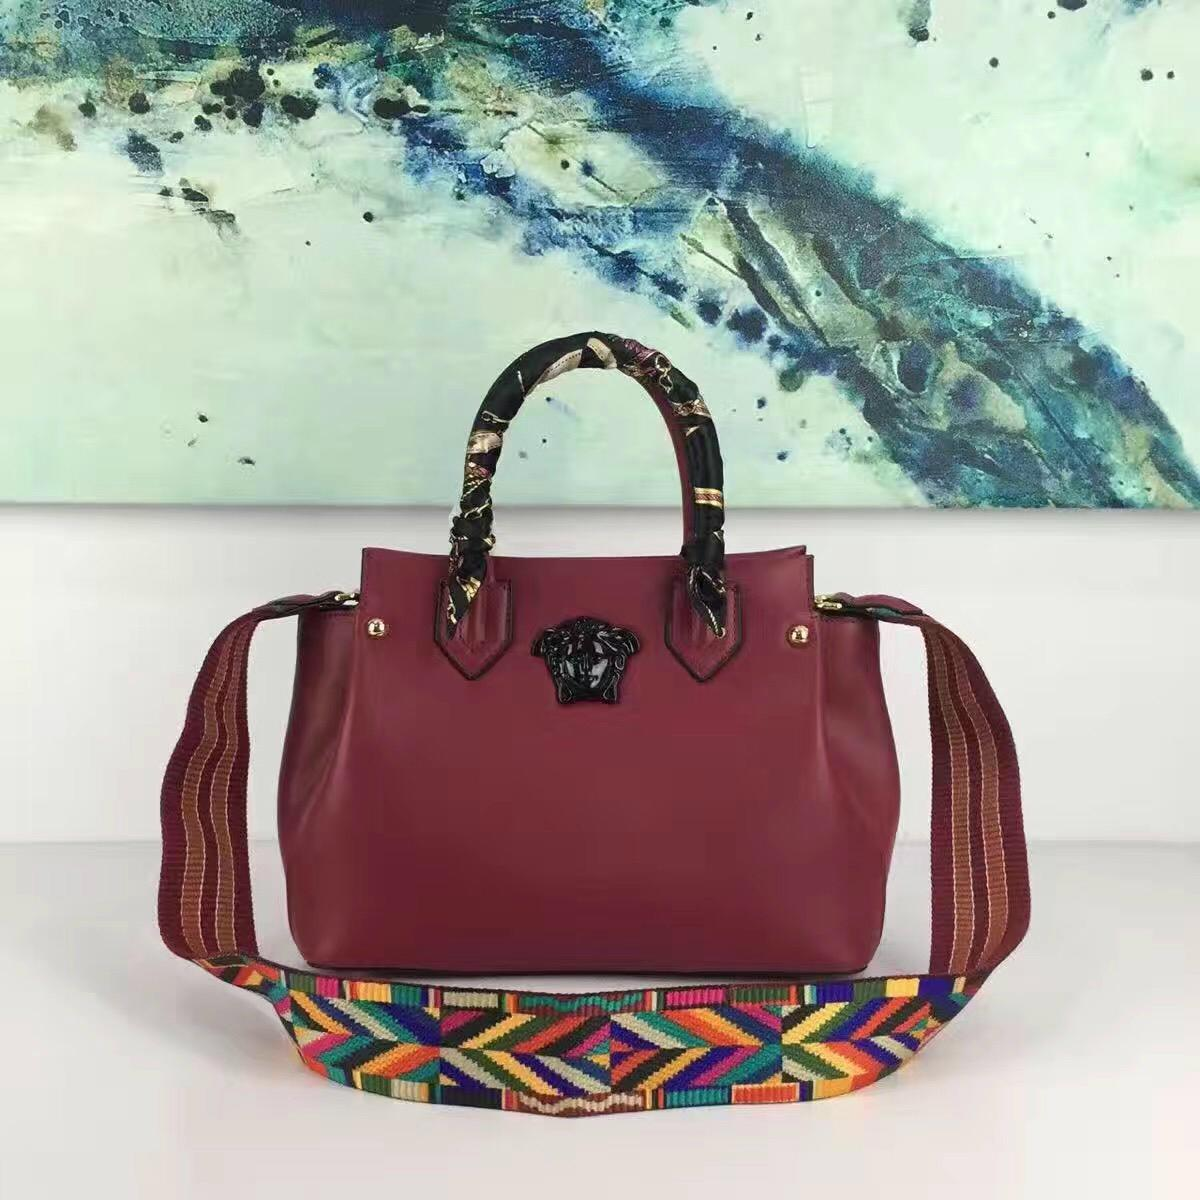 e58144fb35 Versace Bags Leather Handbags lady bag for Women on Sale (China ...